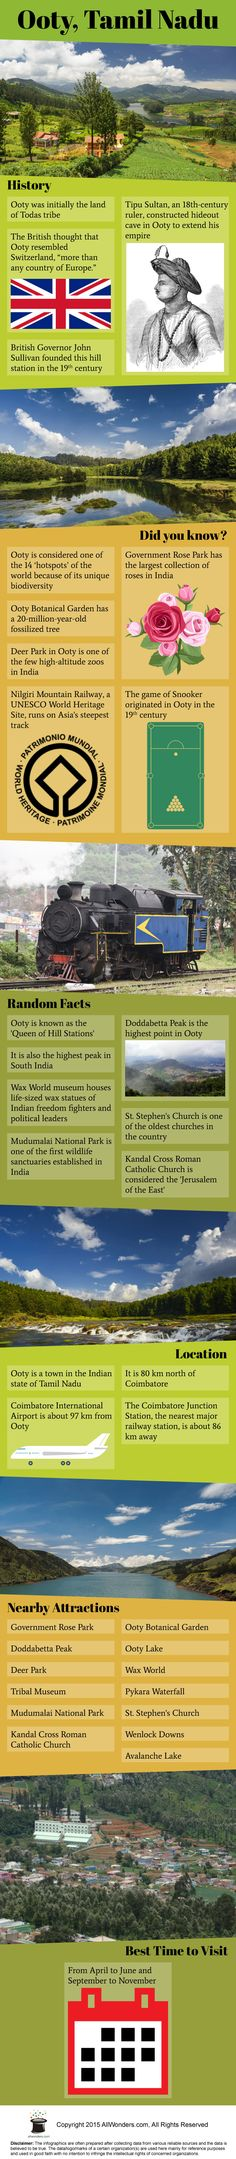 Ooty,Tamil Nadu Infographic